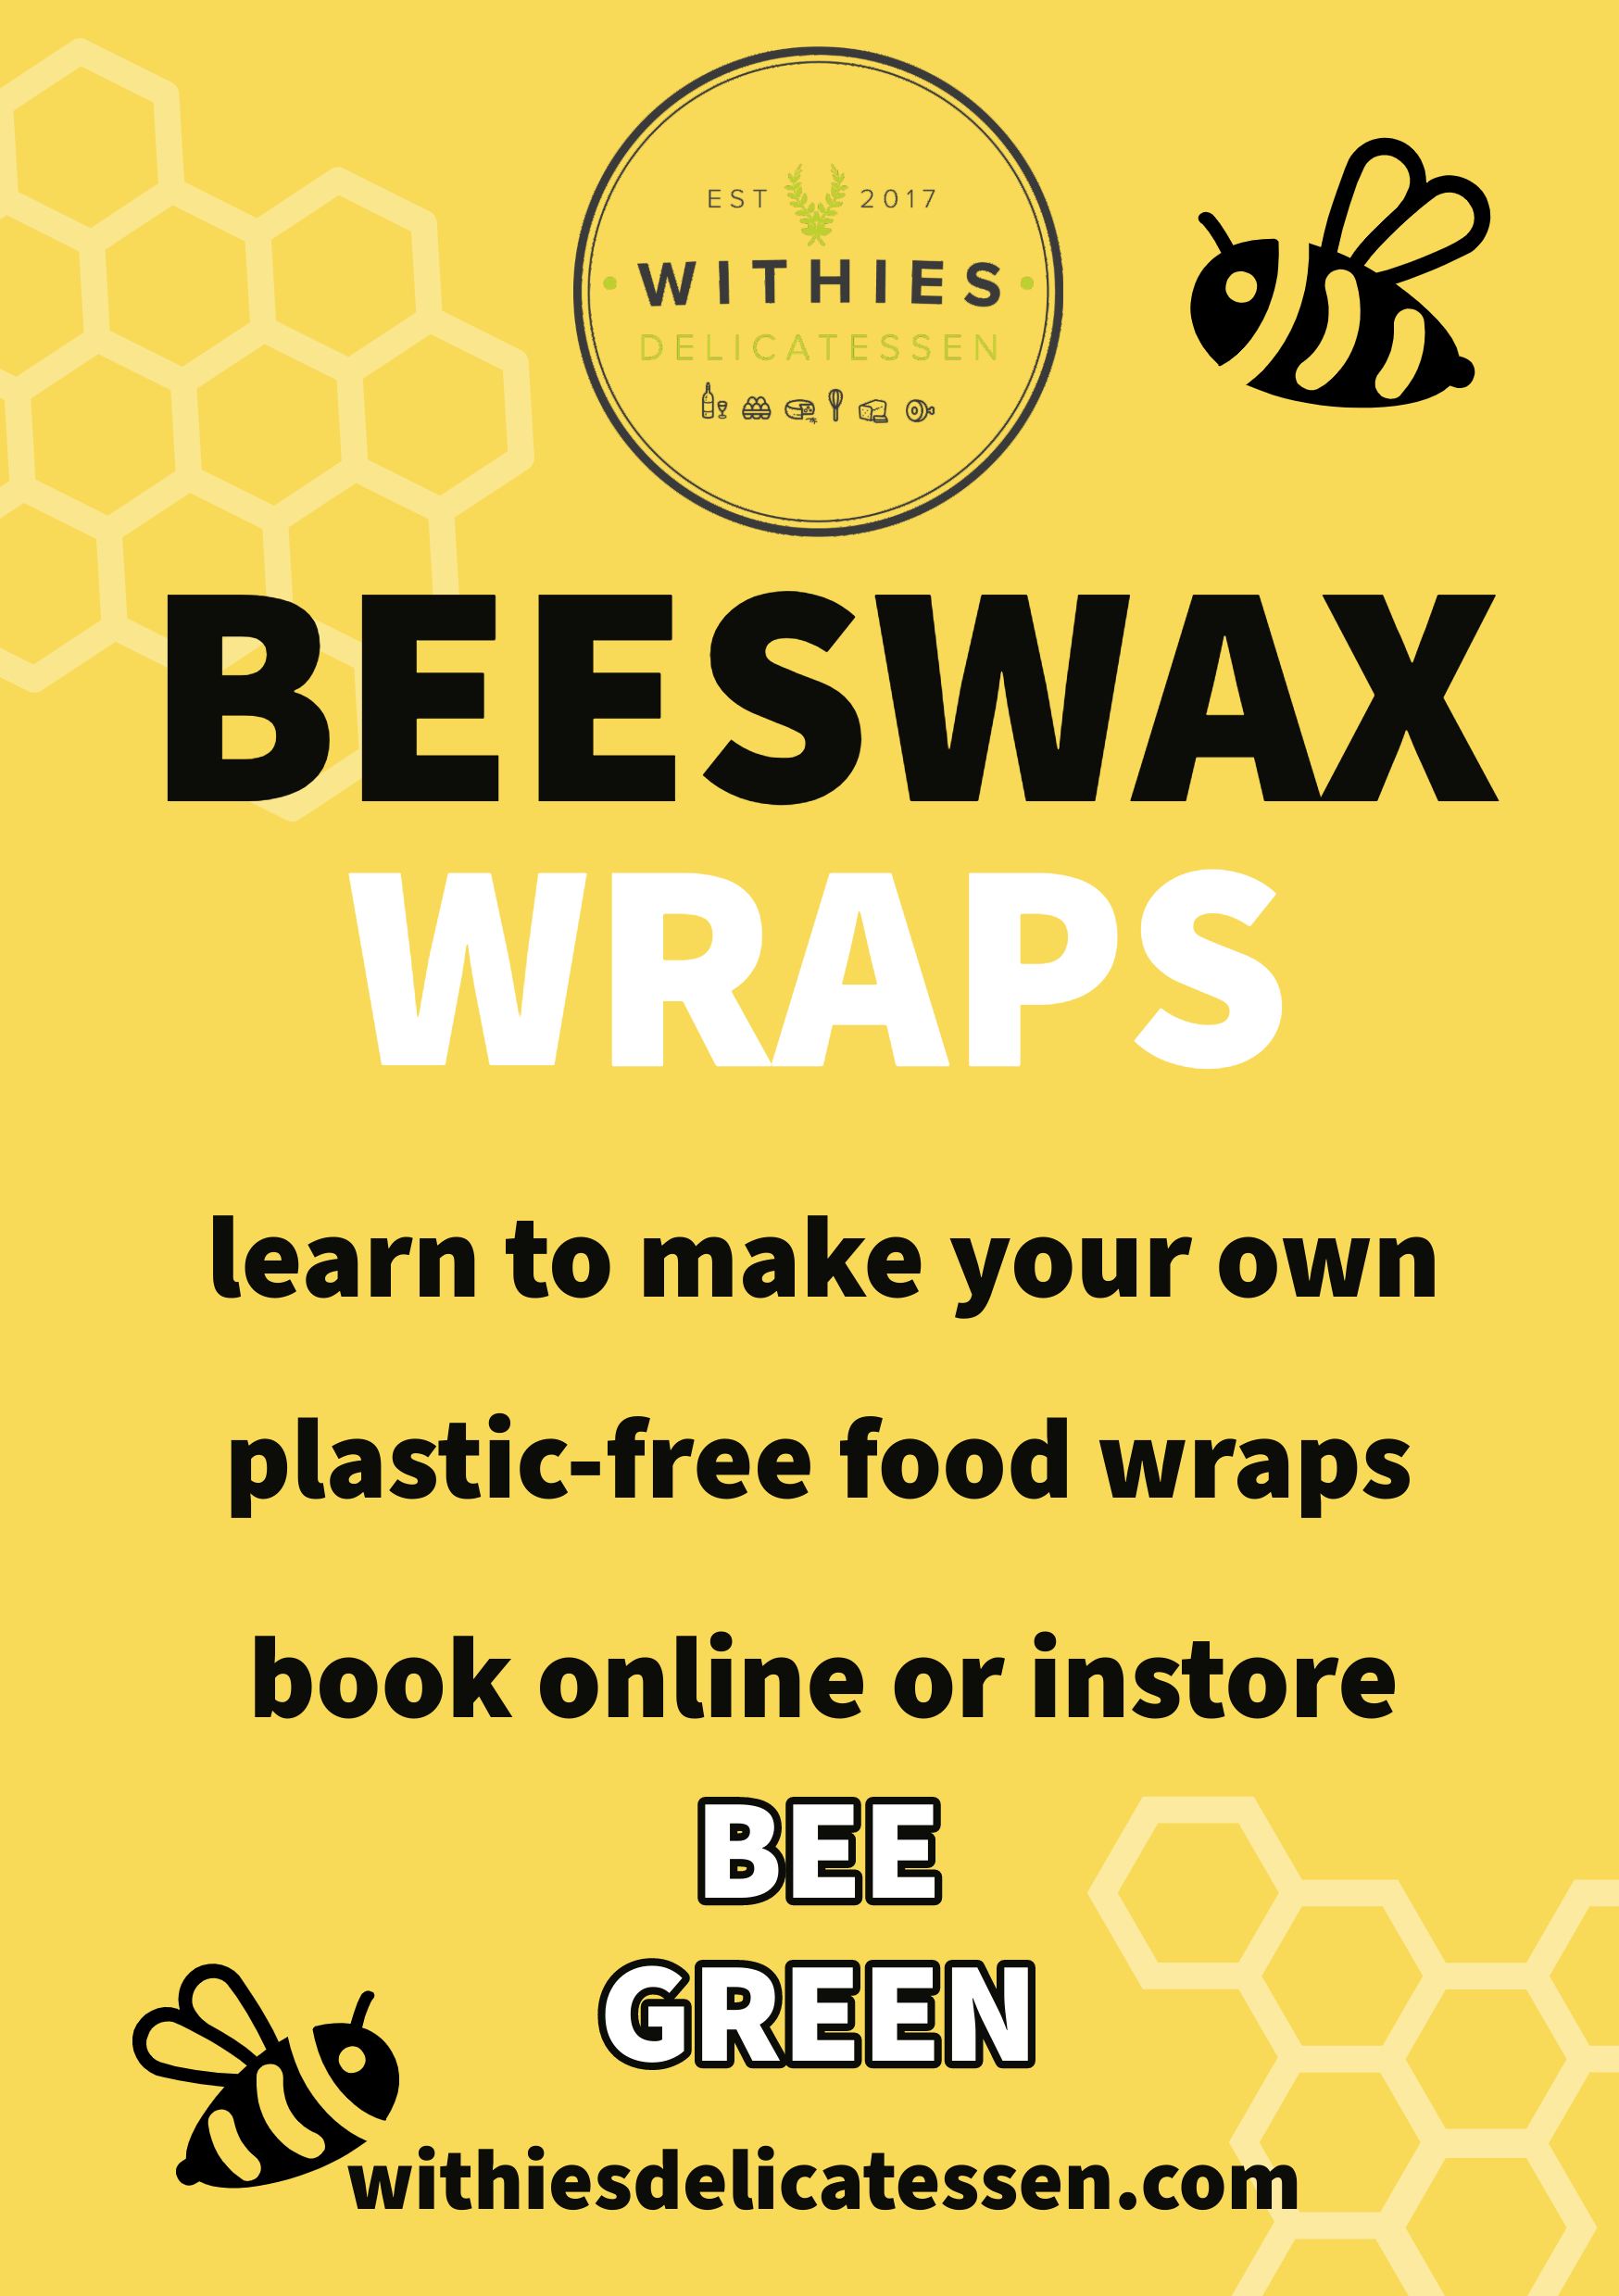 Beeswax Wraps Course